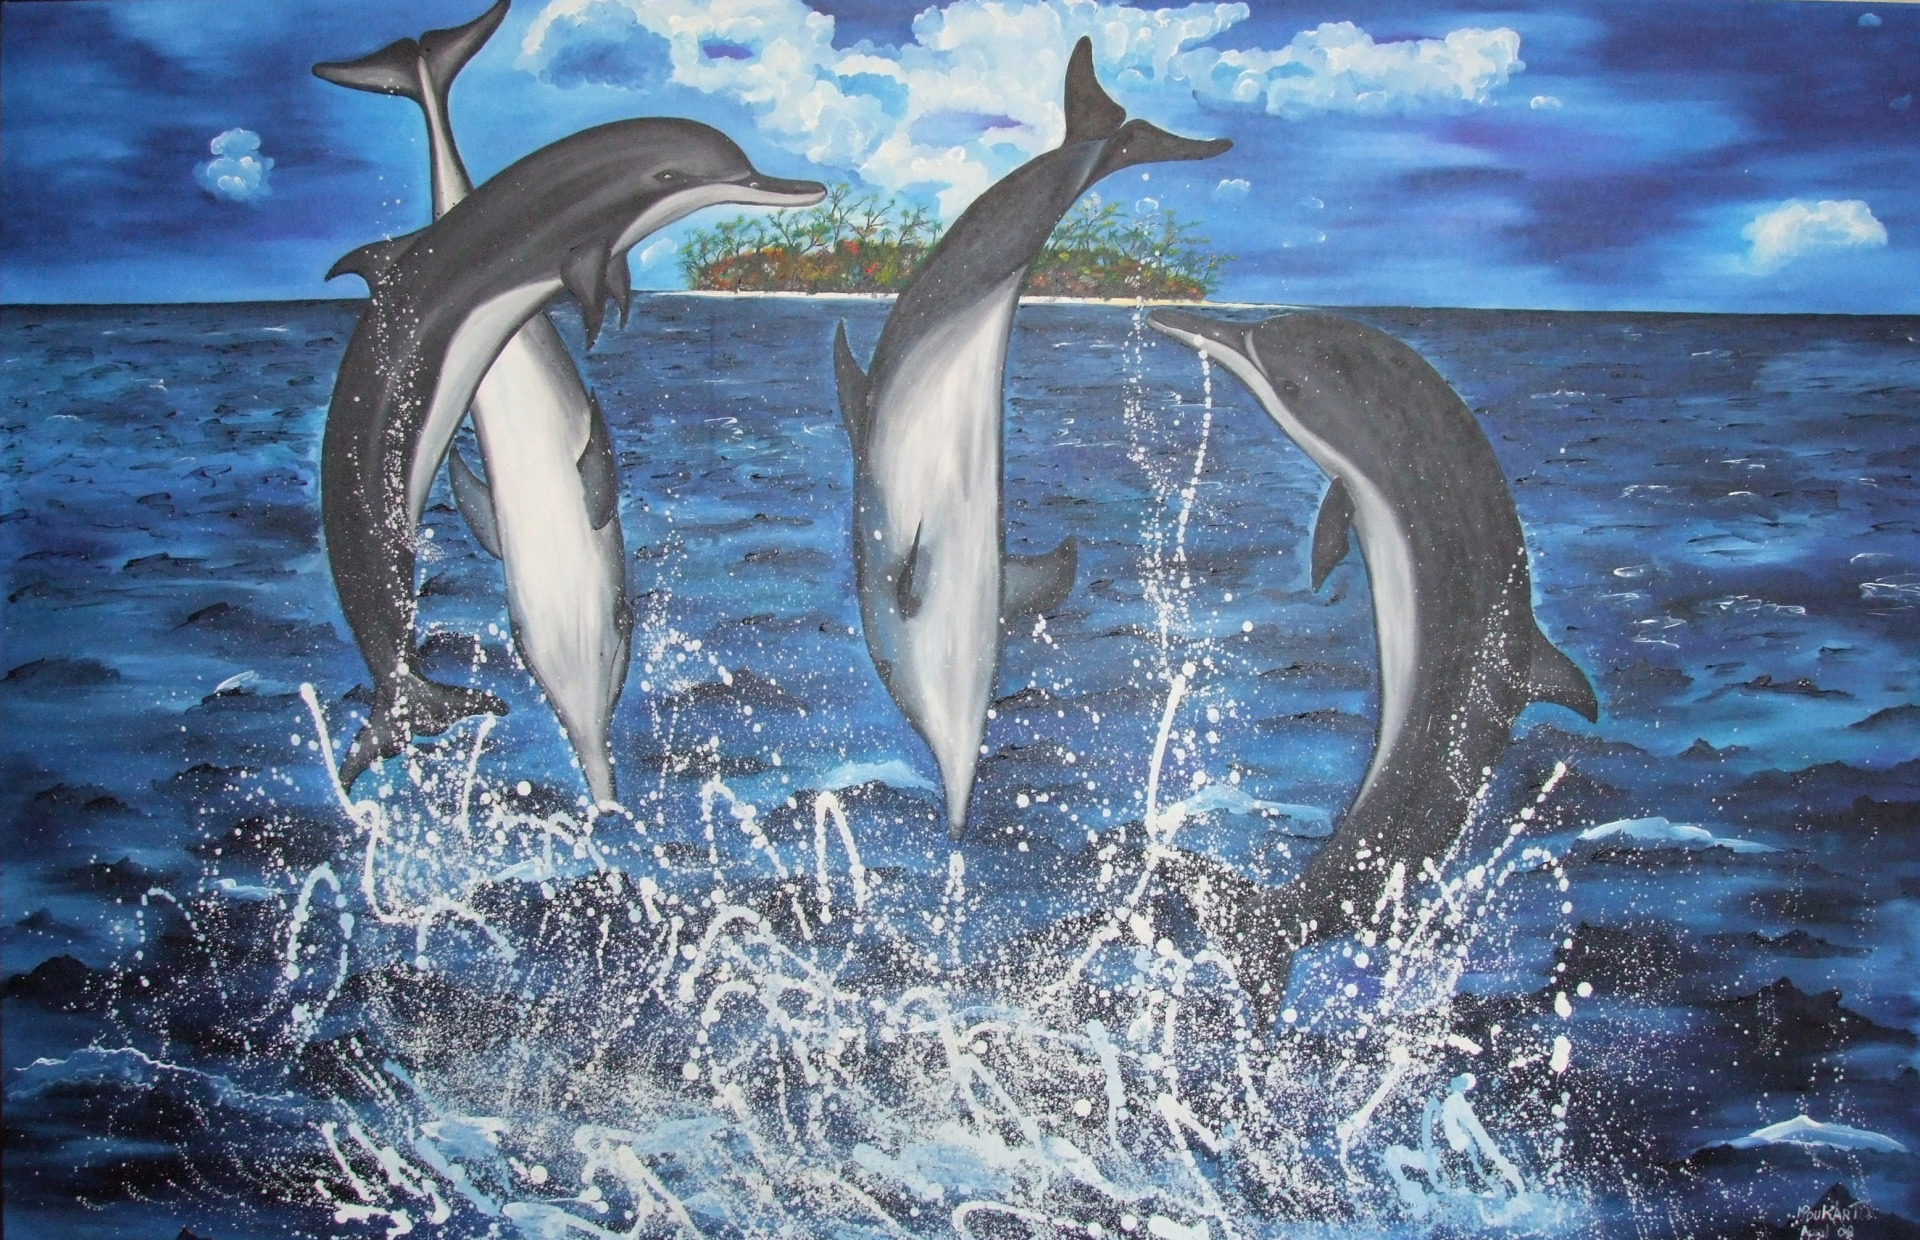 Dolphins 160 x105 cm - oil on canvas